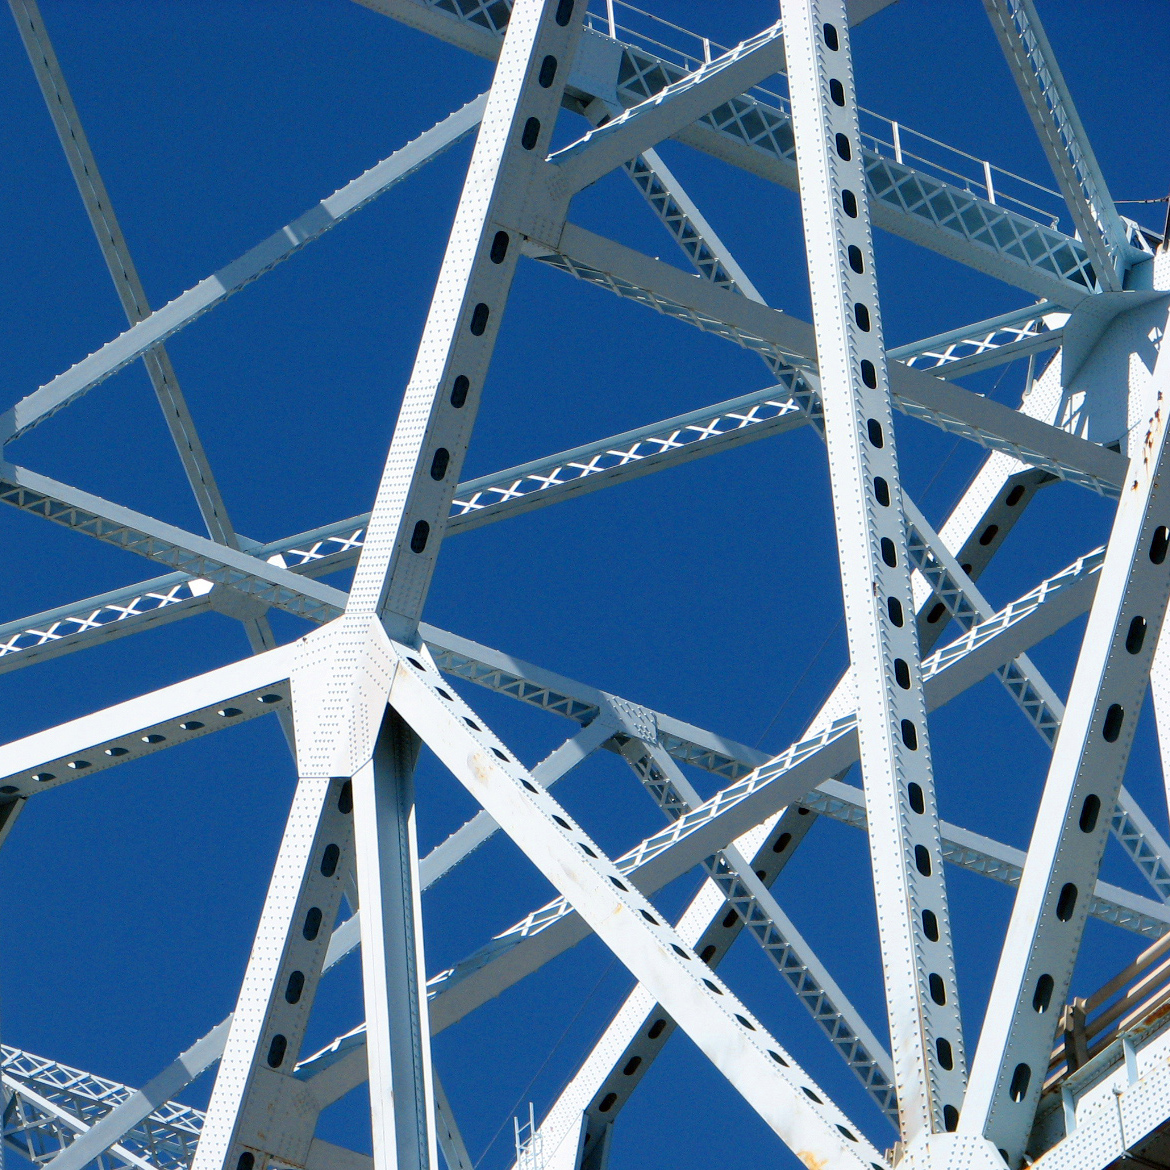 Detail from the Castleton-on-Hudson Bridge, 2009. (Tomorrowstand / Flickr / CC BY-NC-SA 2.0)